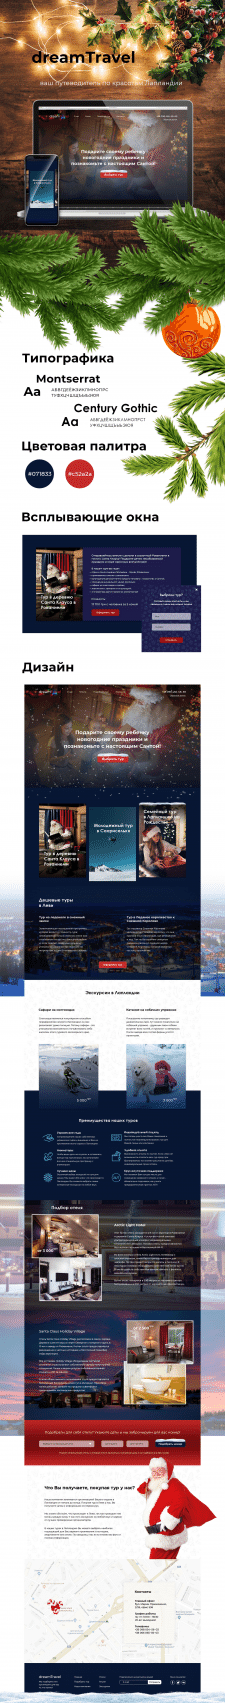 Landing page for a travel company